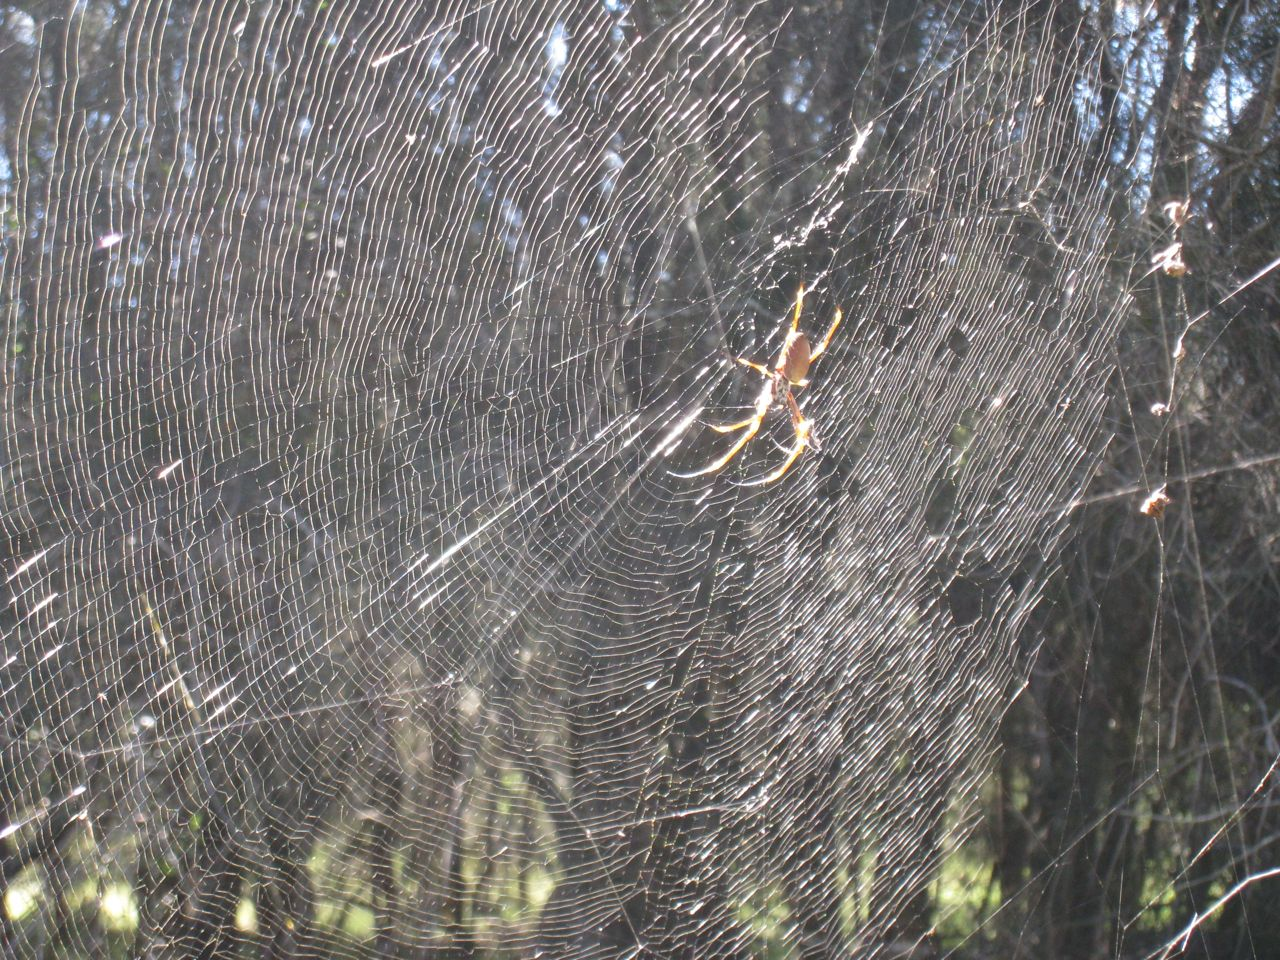 myths surrounding a spider weaving a web Click here to read some interesting facts and myths about spiders daddy long legs are not actually spiders at all, making this myth completely false more spider facts the following statements are confirmed facts about spiders: the fishing spider doesn't make a web to catch prey like its cousins it rests in the surface.